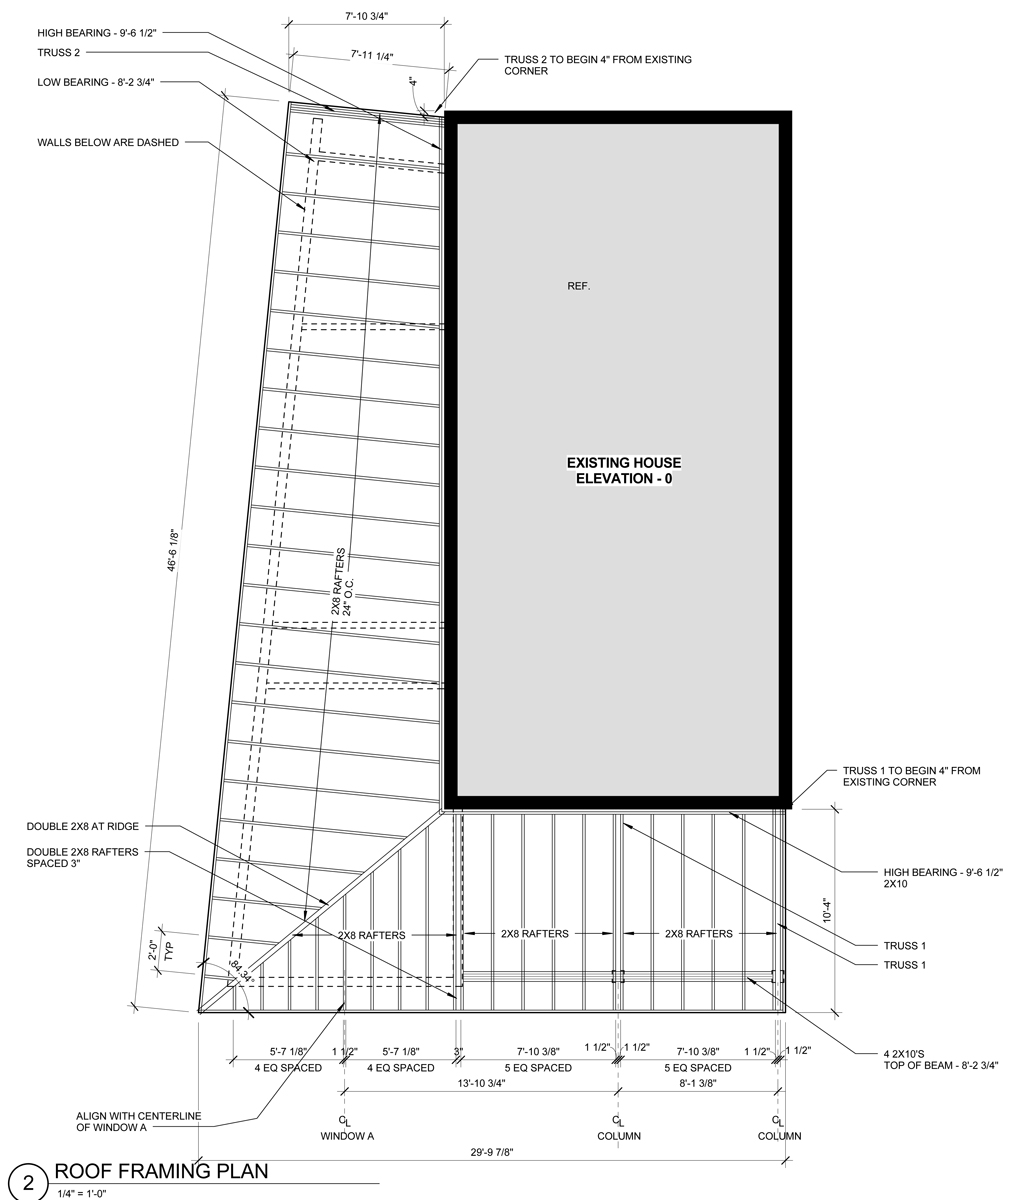 The Roof Framing Plan. Notice the shape of the roof on the left side. The rafter span gets wider, which means every rafter is a different length and a different slope.